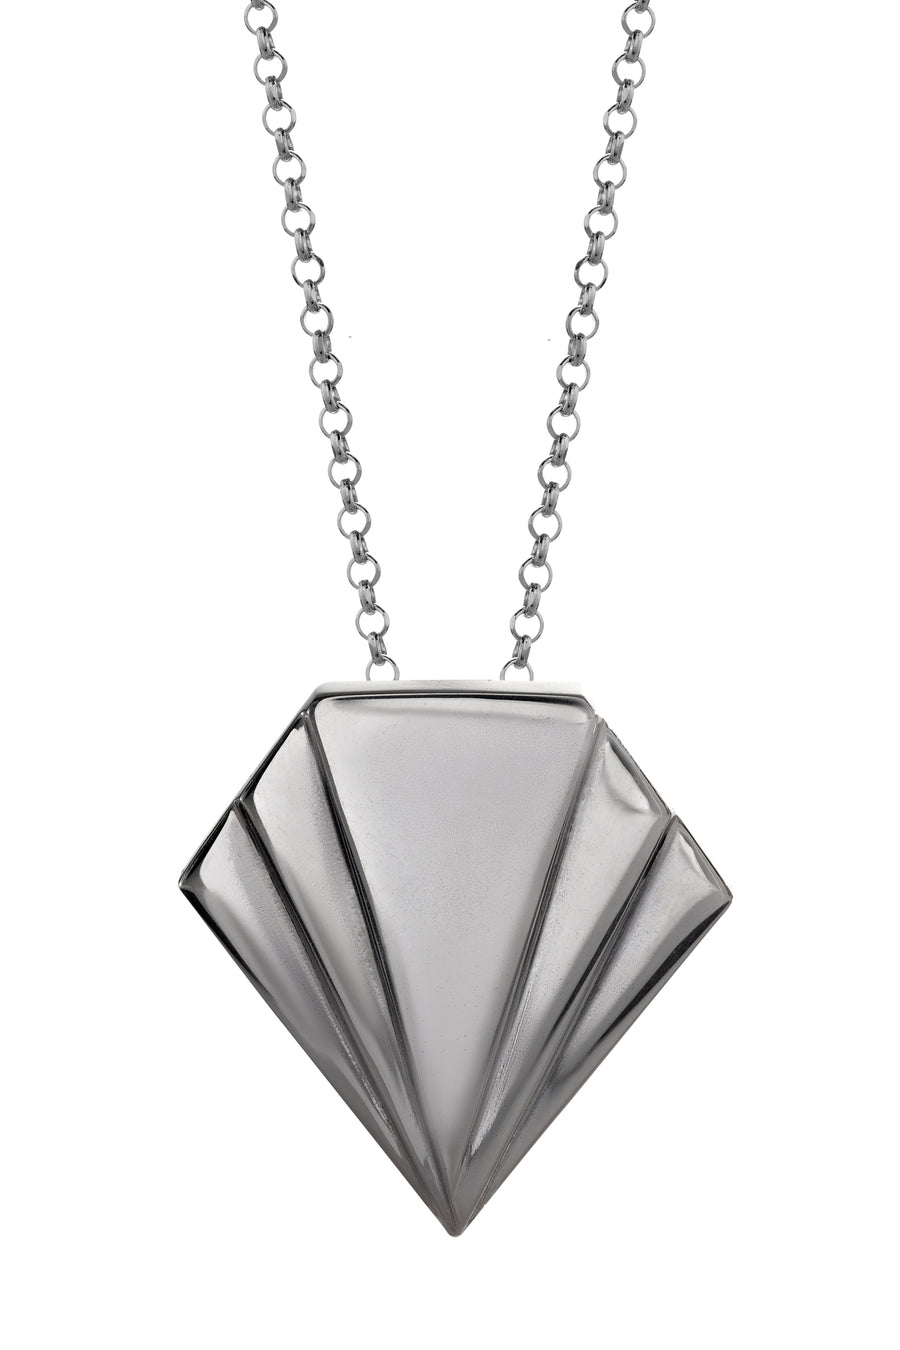 Silver art deco style pendant, merging at the base. Chunky statement pendant piece, hallmarked sterling silver.